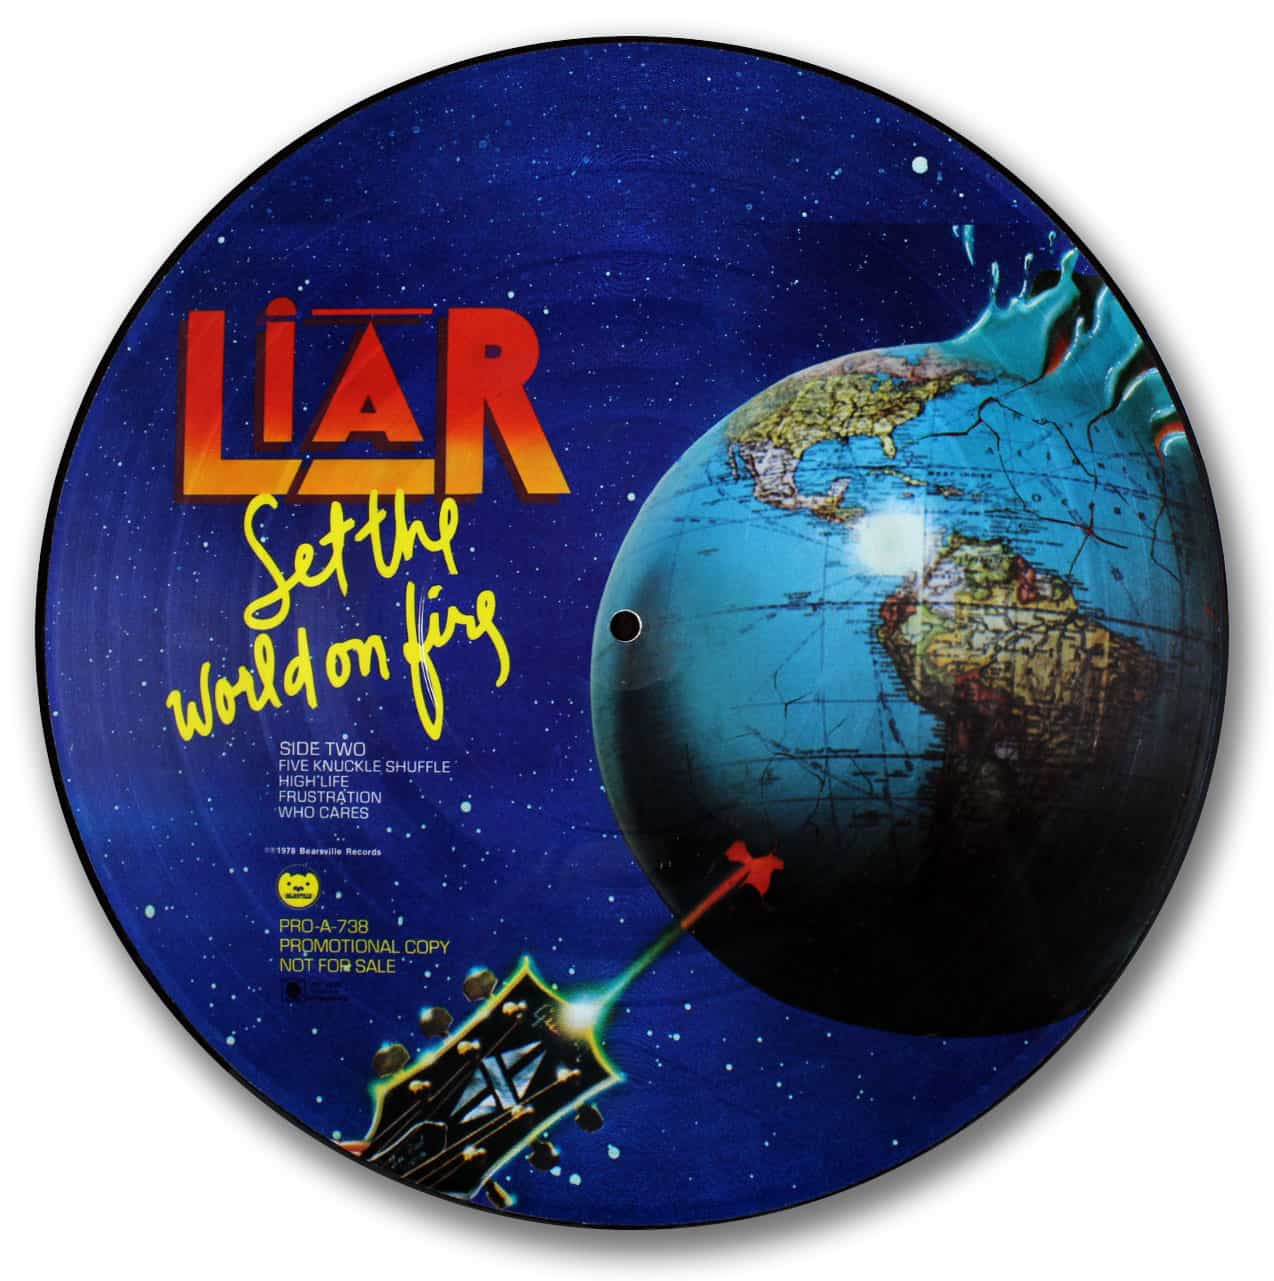 liar, set the world on fire picture disc